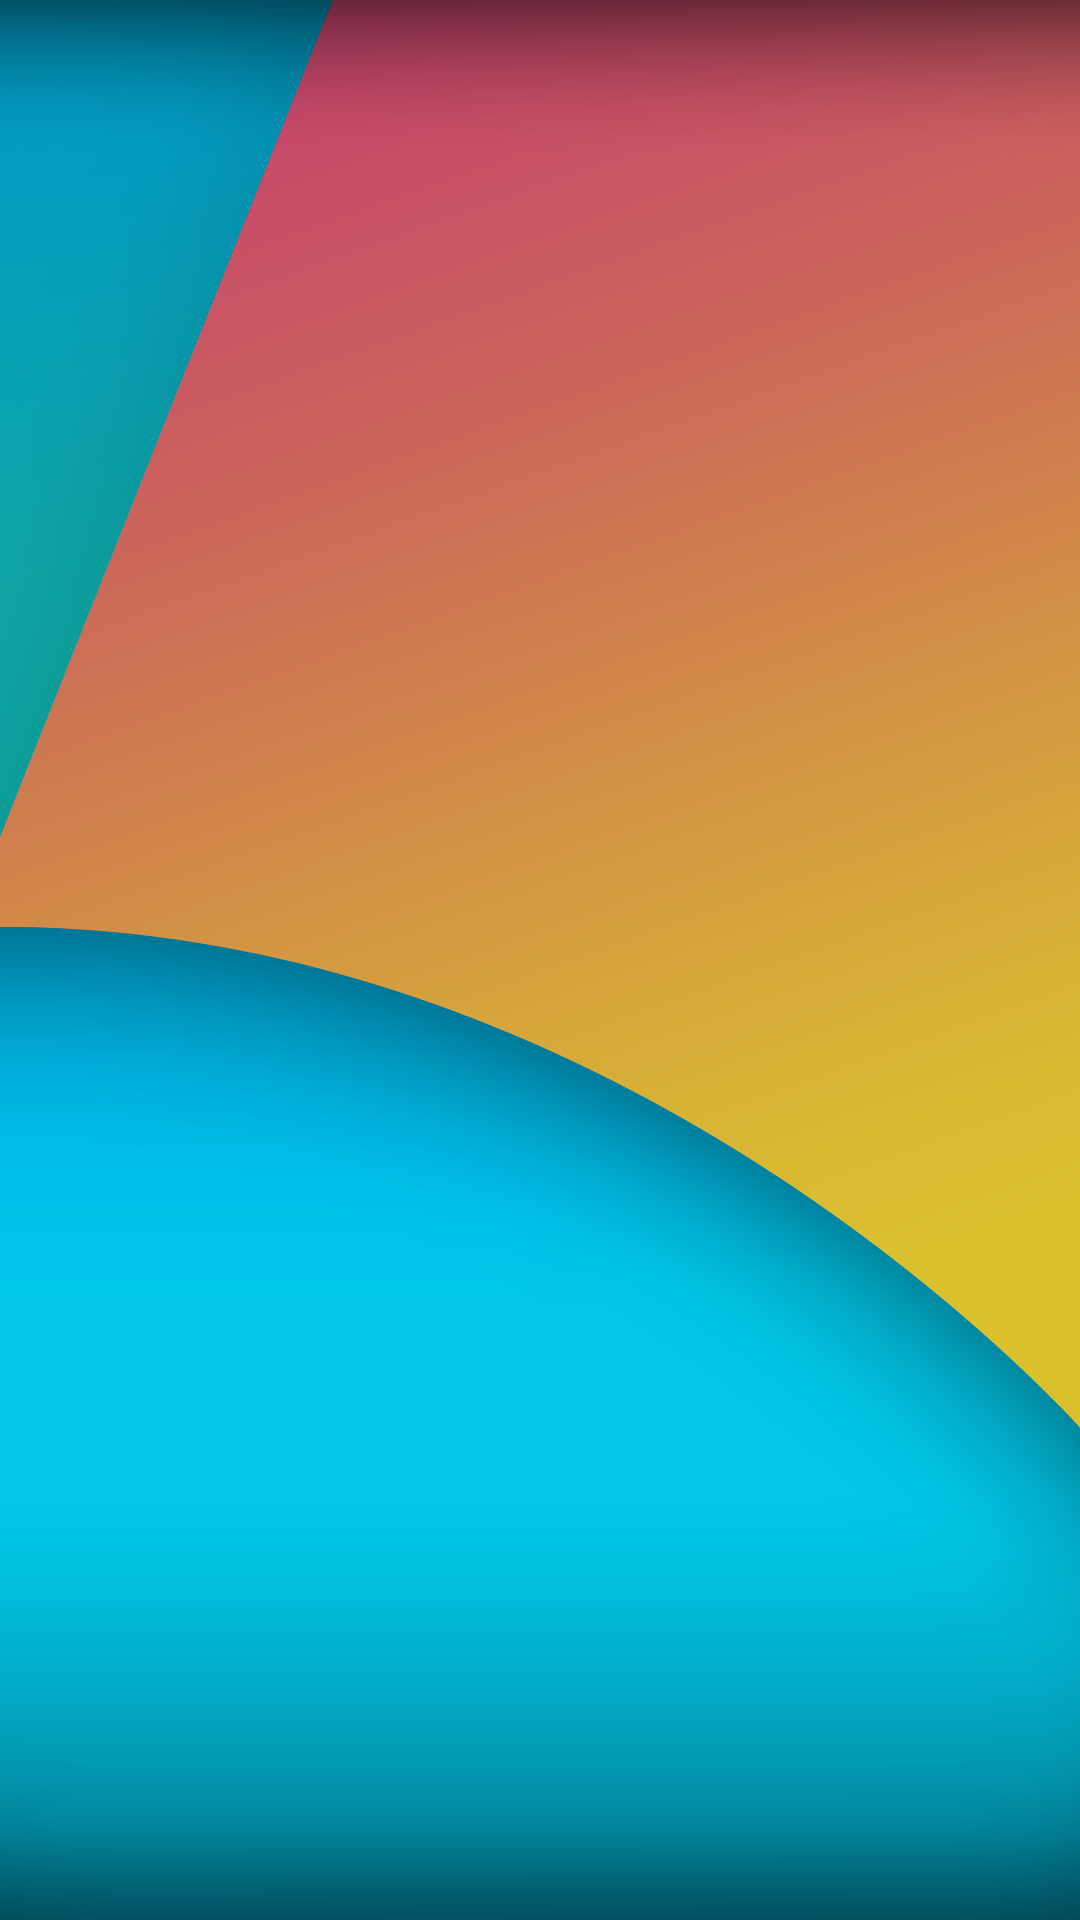 Download Nexus 5 Android 4.4 KitKat Stock Background